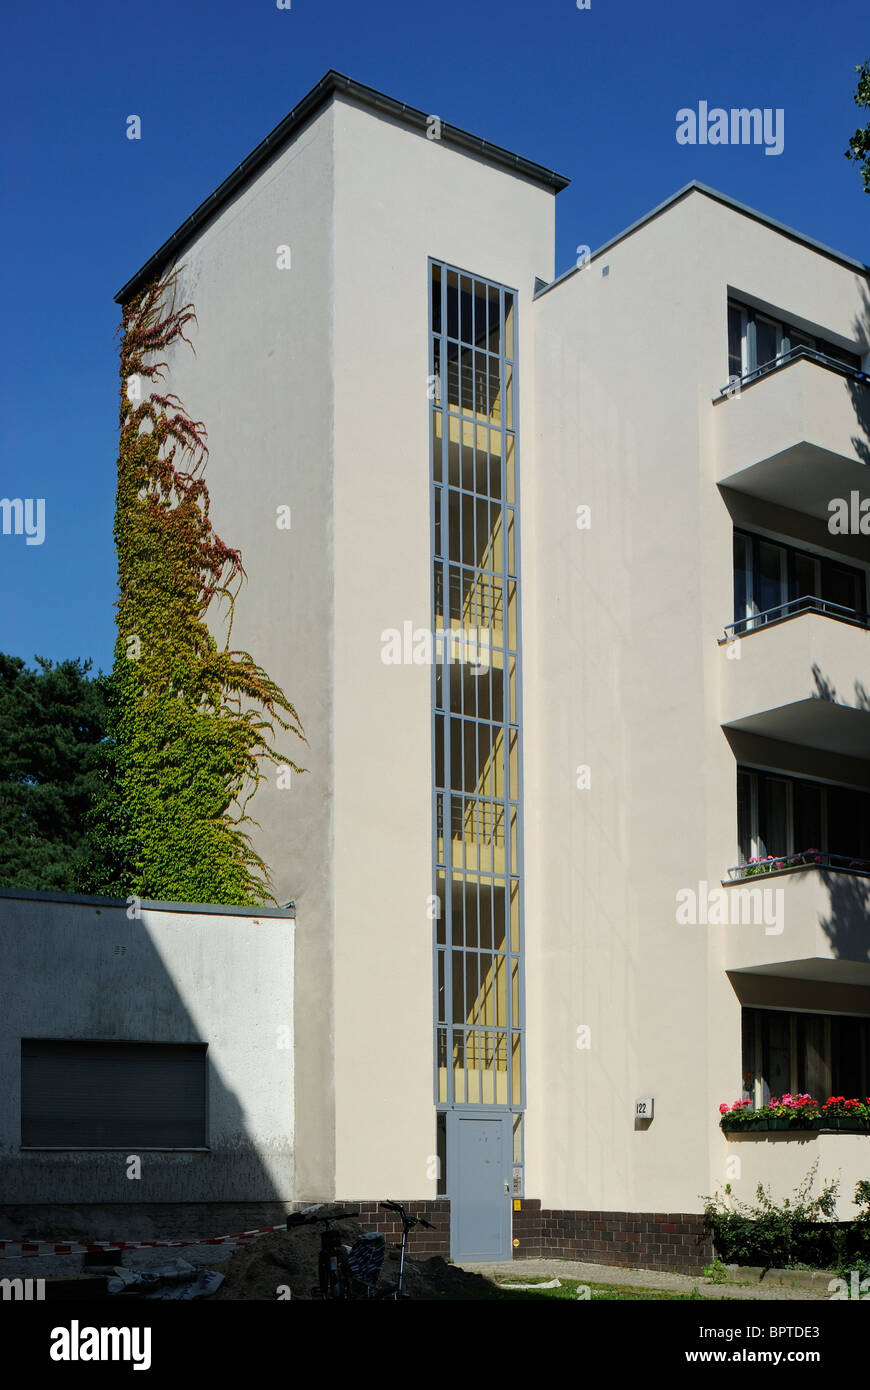 Grosssiedlung Ringsiedlung Siemensstadt, house by architect Walter Gropius, World Heritage Site, Berlin, Germany. - Stock Image